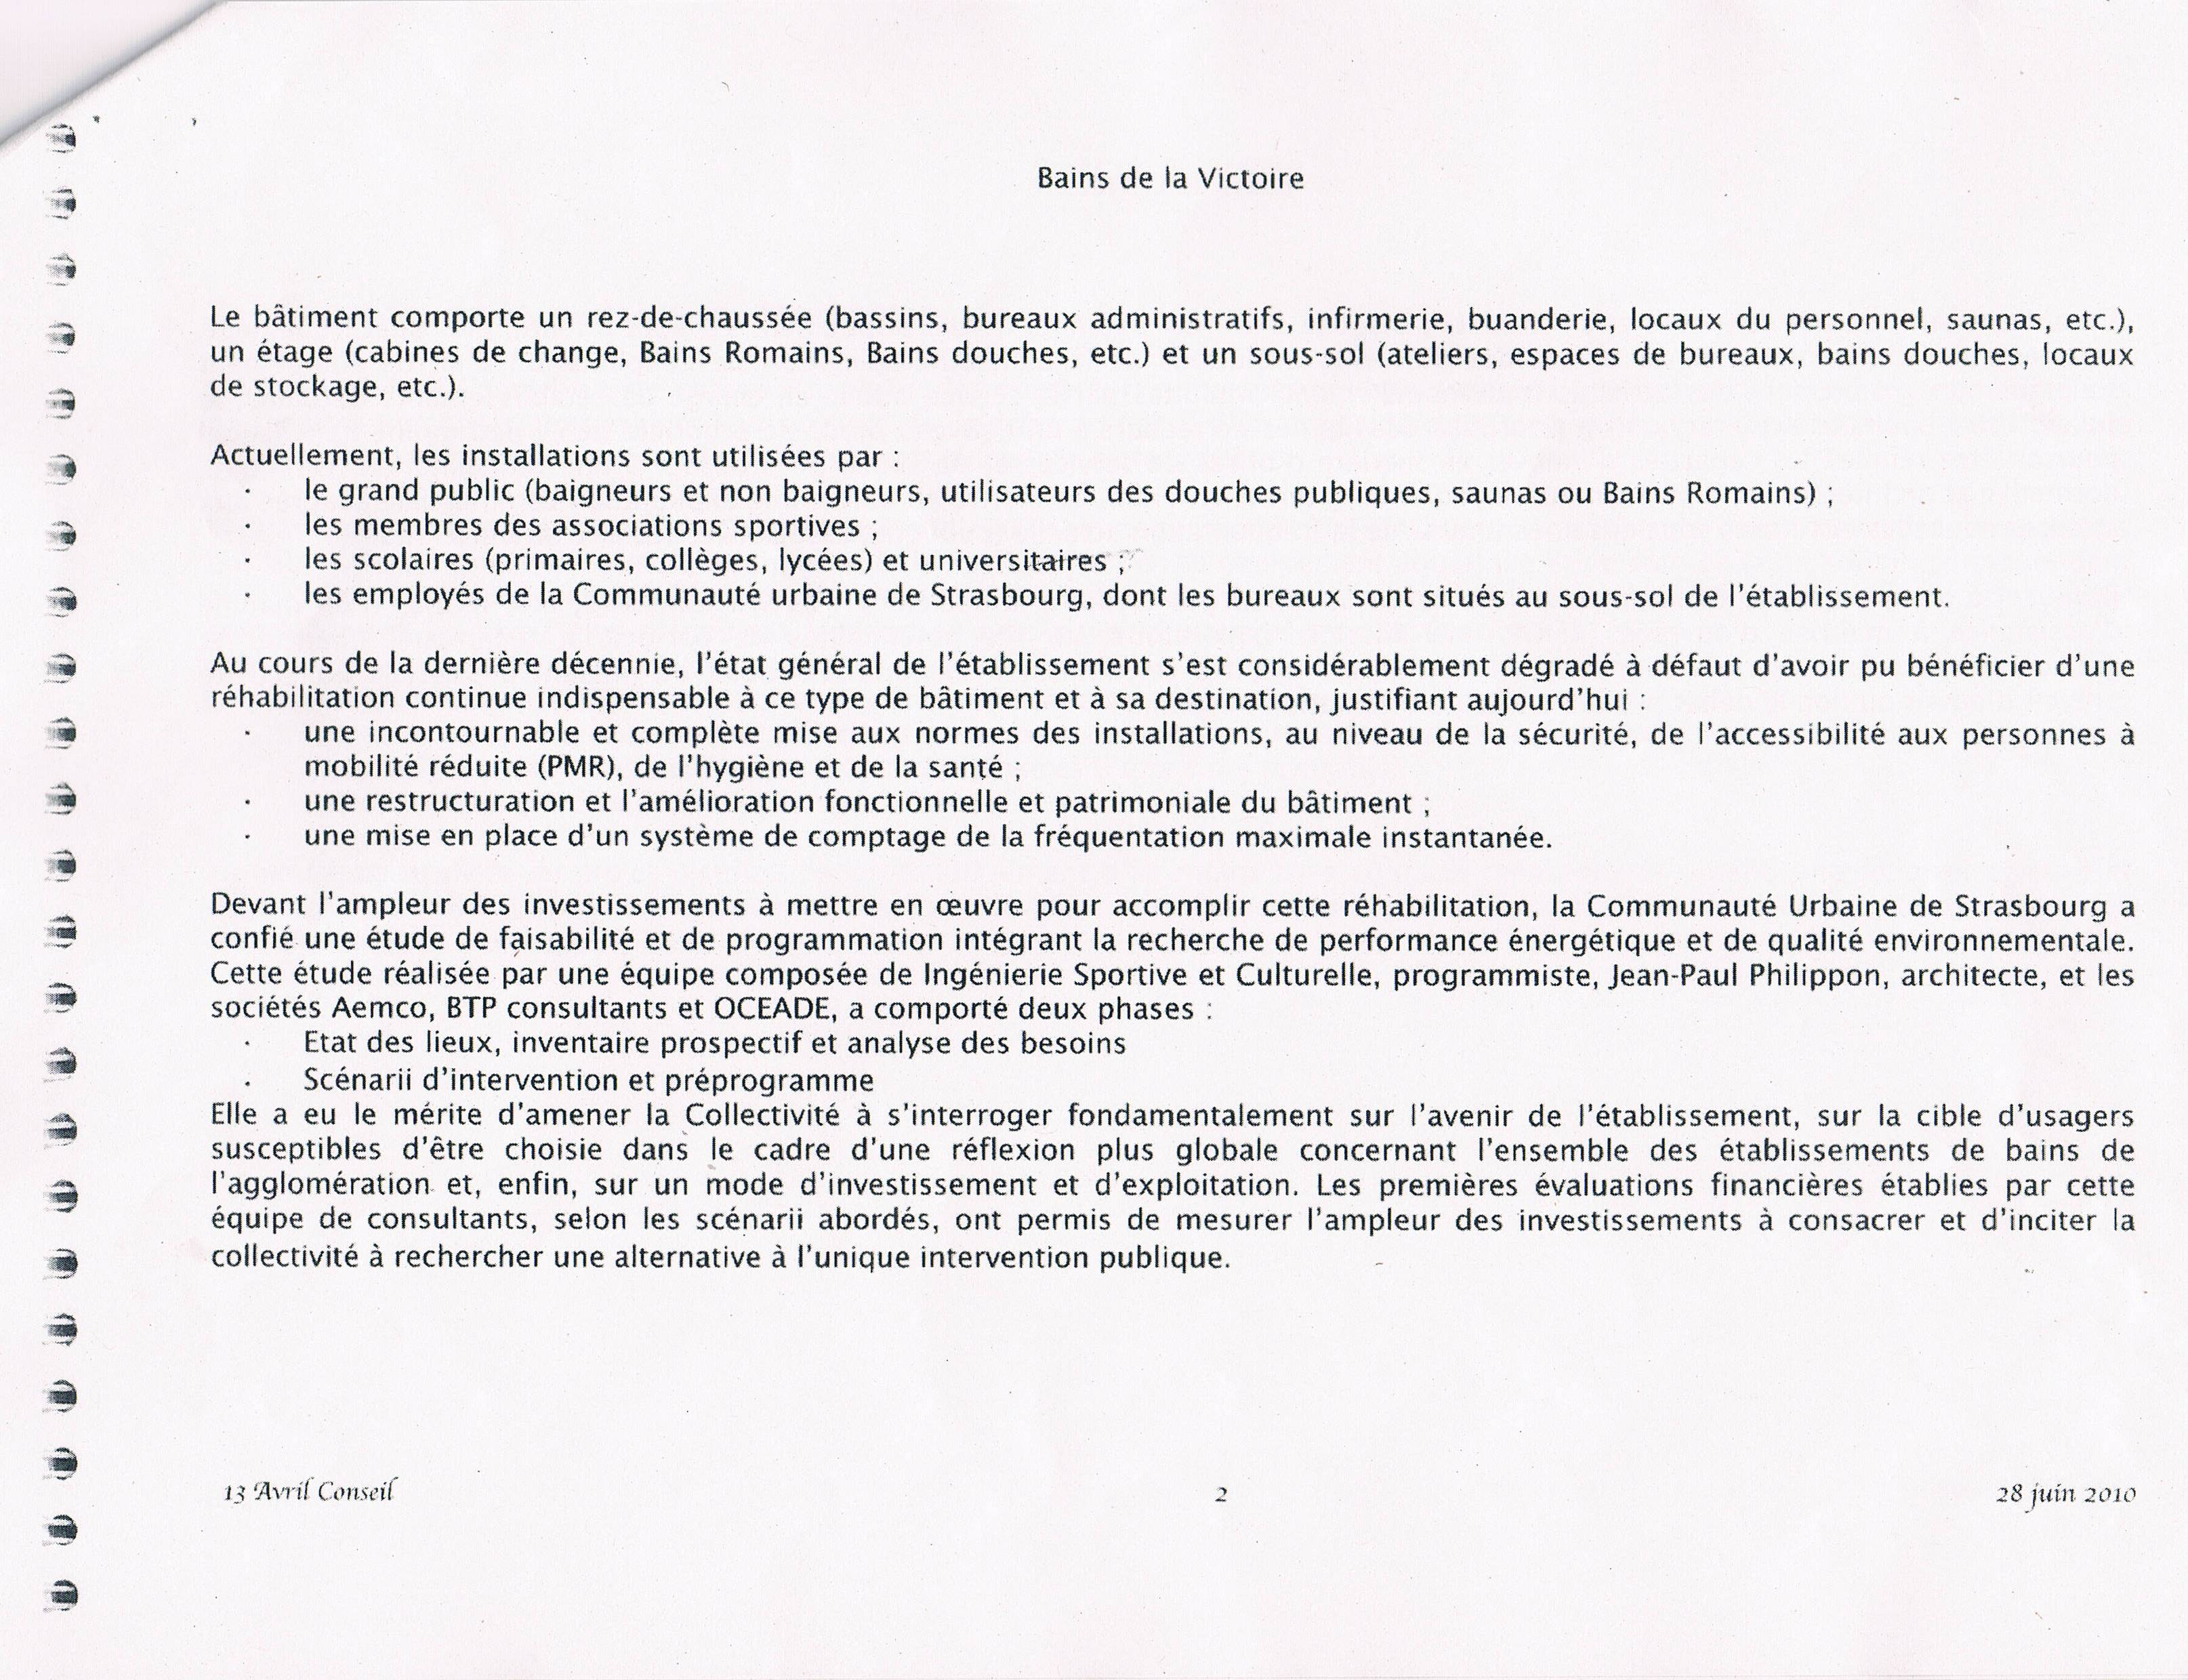 13 avril page 2